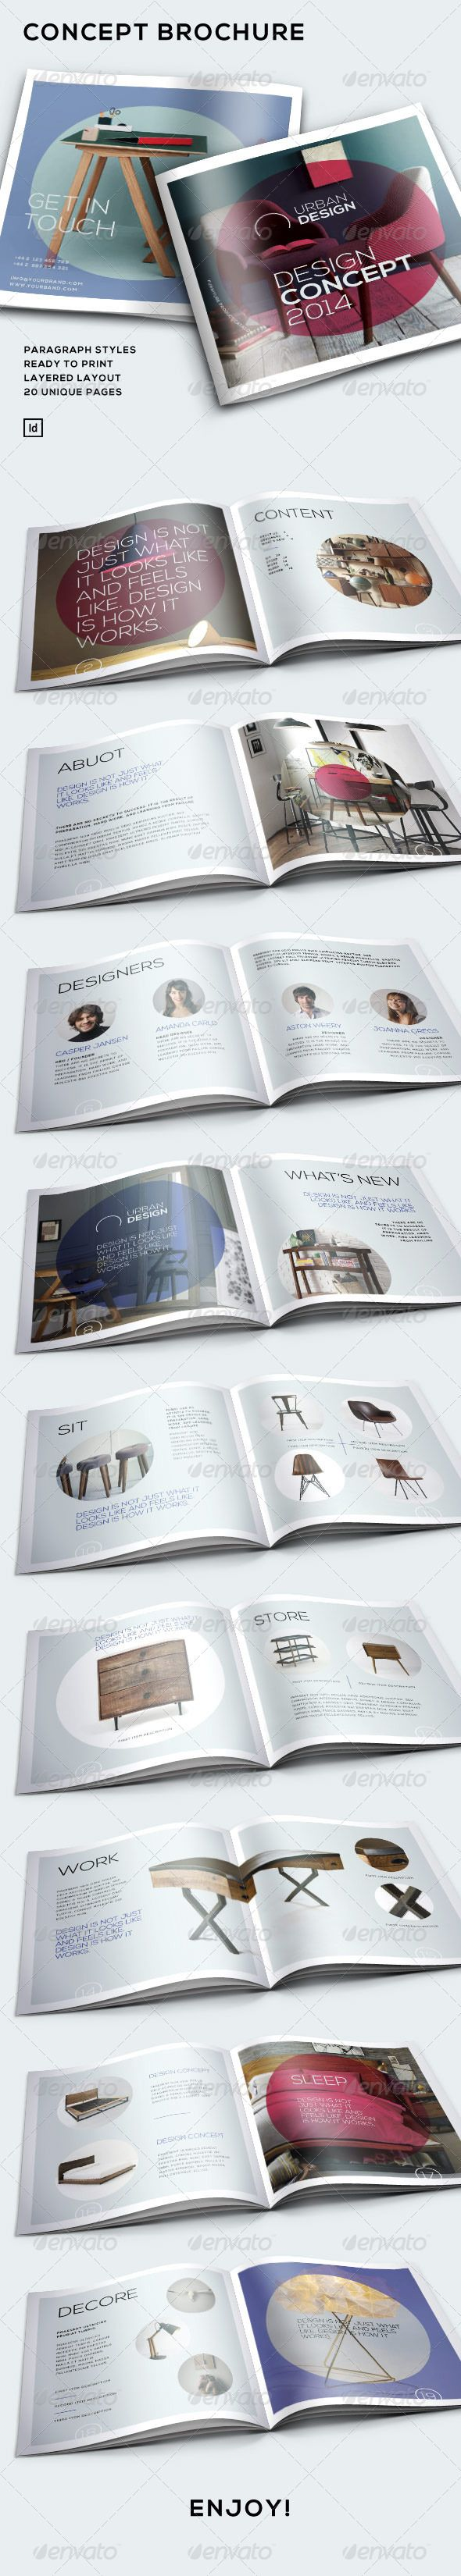 Concept Brochure — InDesign INDD #catalog #design • Available here → https://graphicriver.net/item/concept-brochure/7019996?ref=pxcr